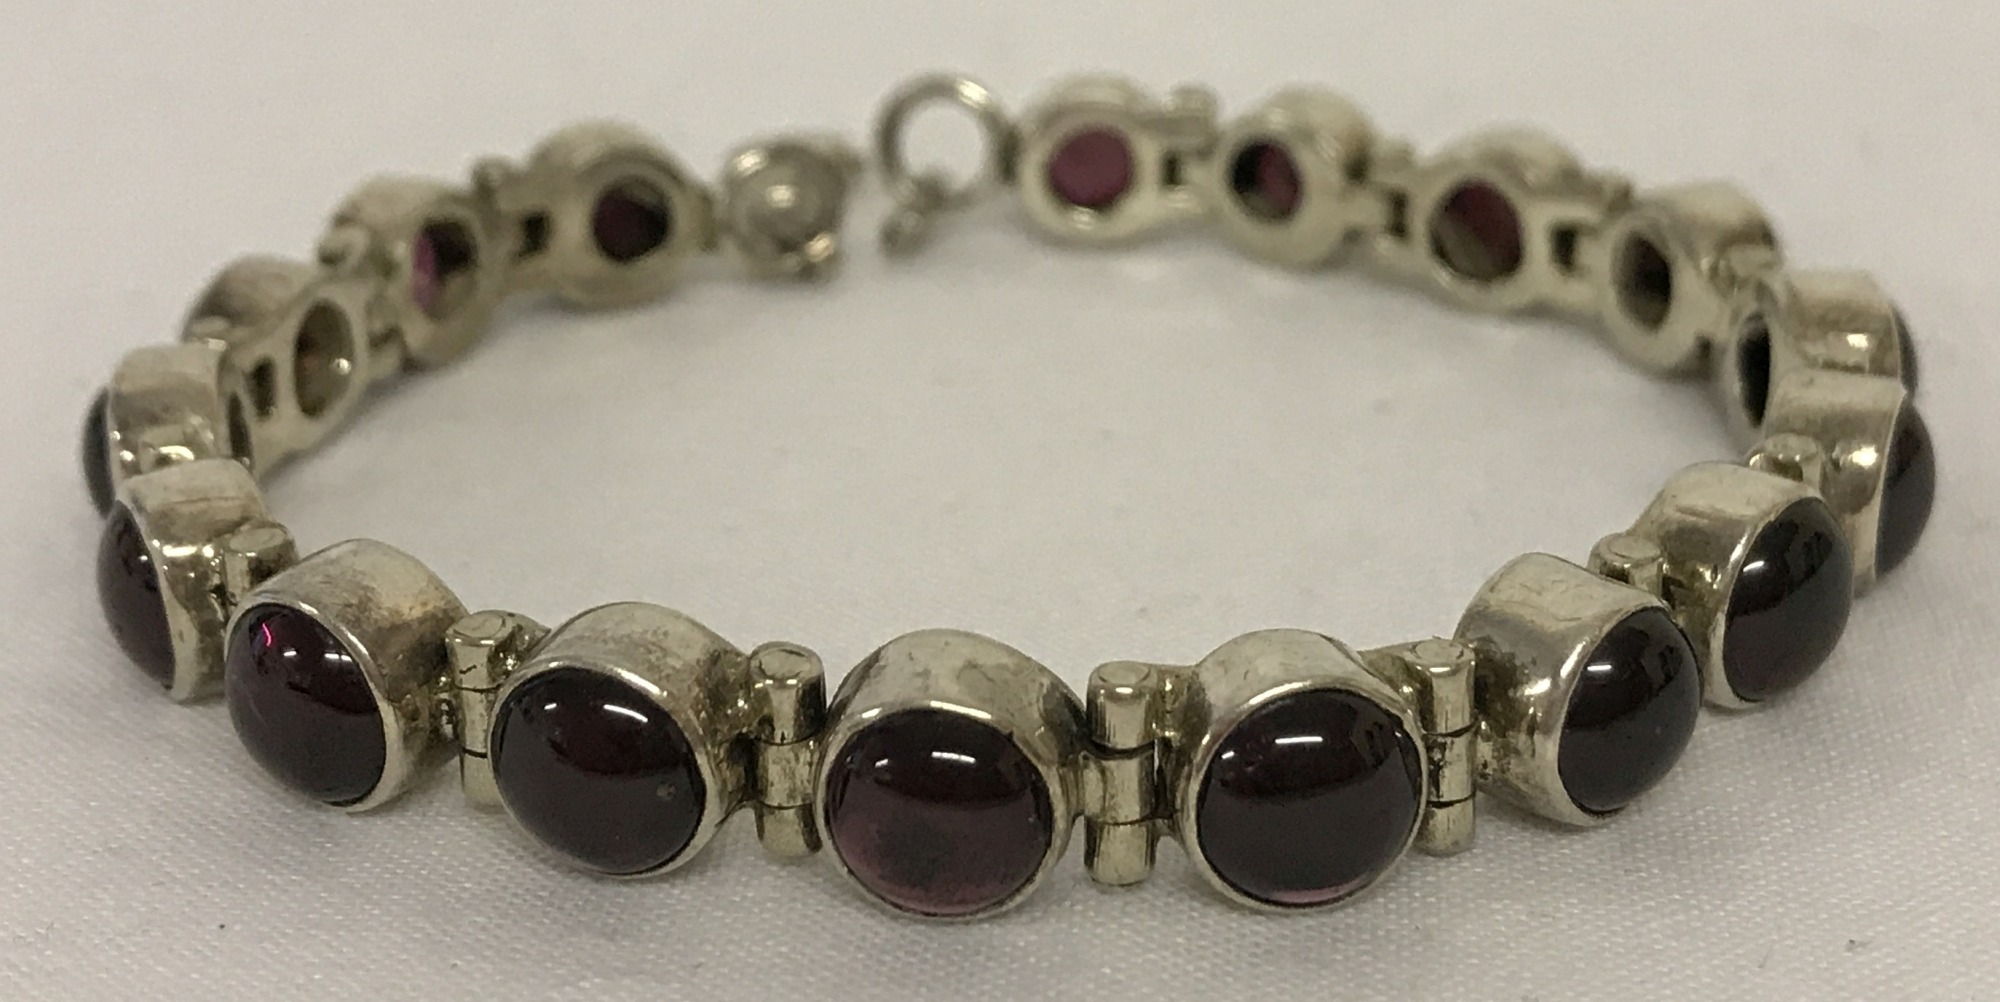 Lot 47 - A modern tennis style silver bracelet set with 17 garnet cabochon stones. With lobster clasp.